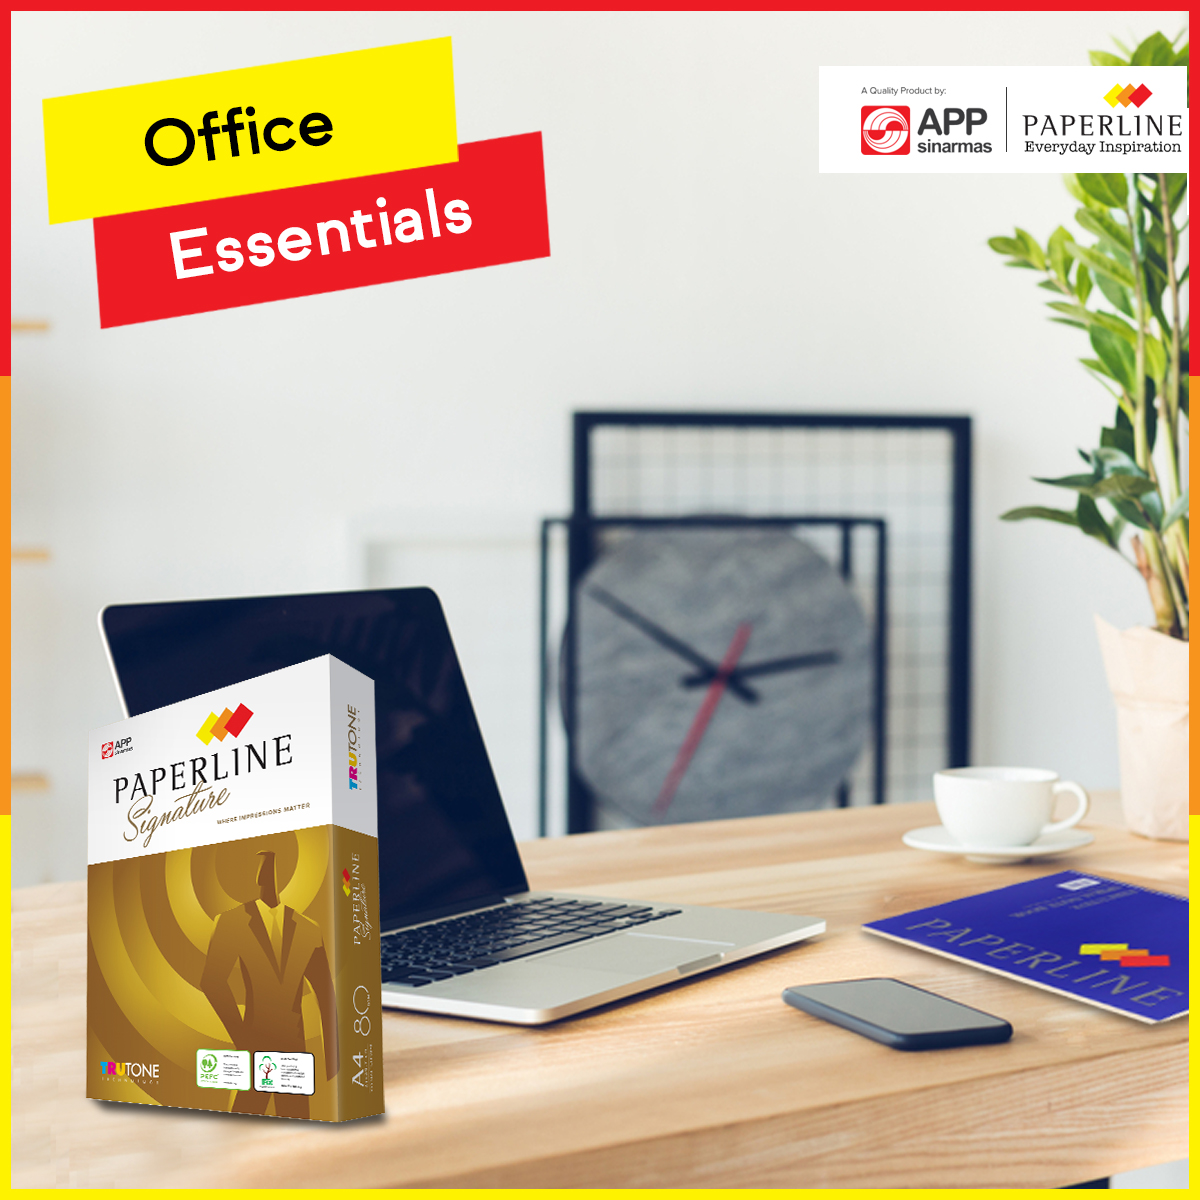 5 must-have paper-based office essentials